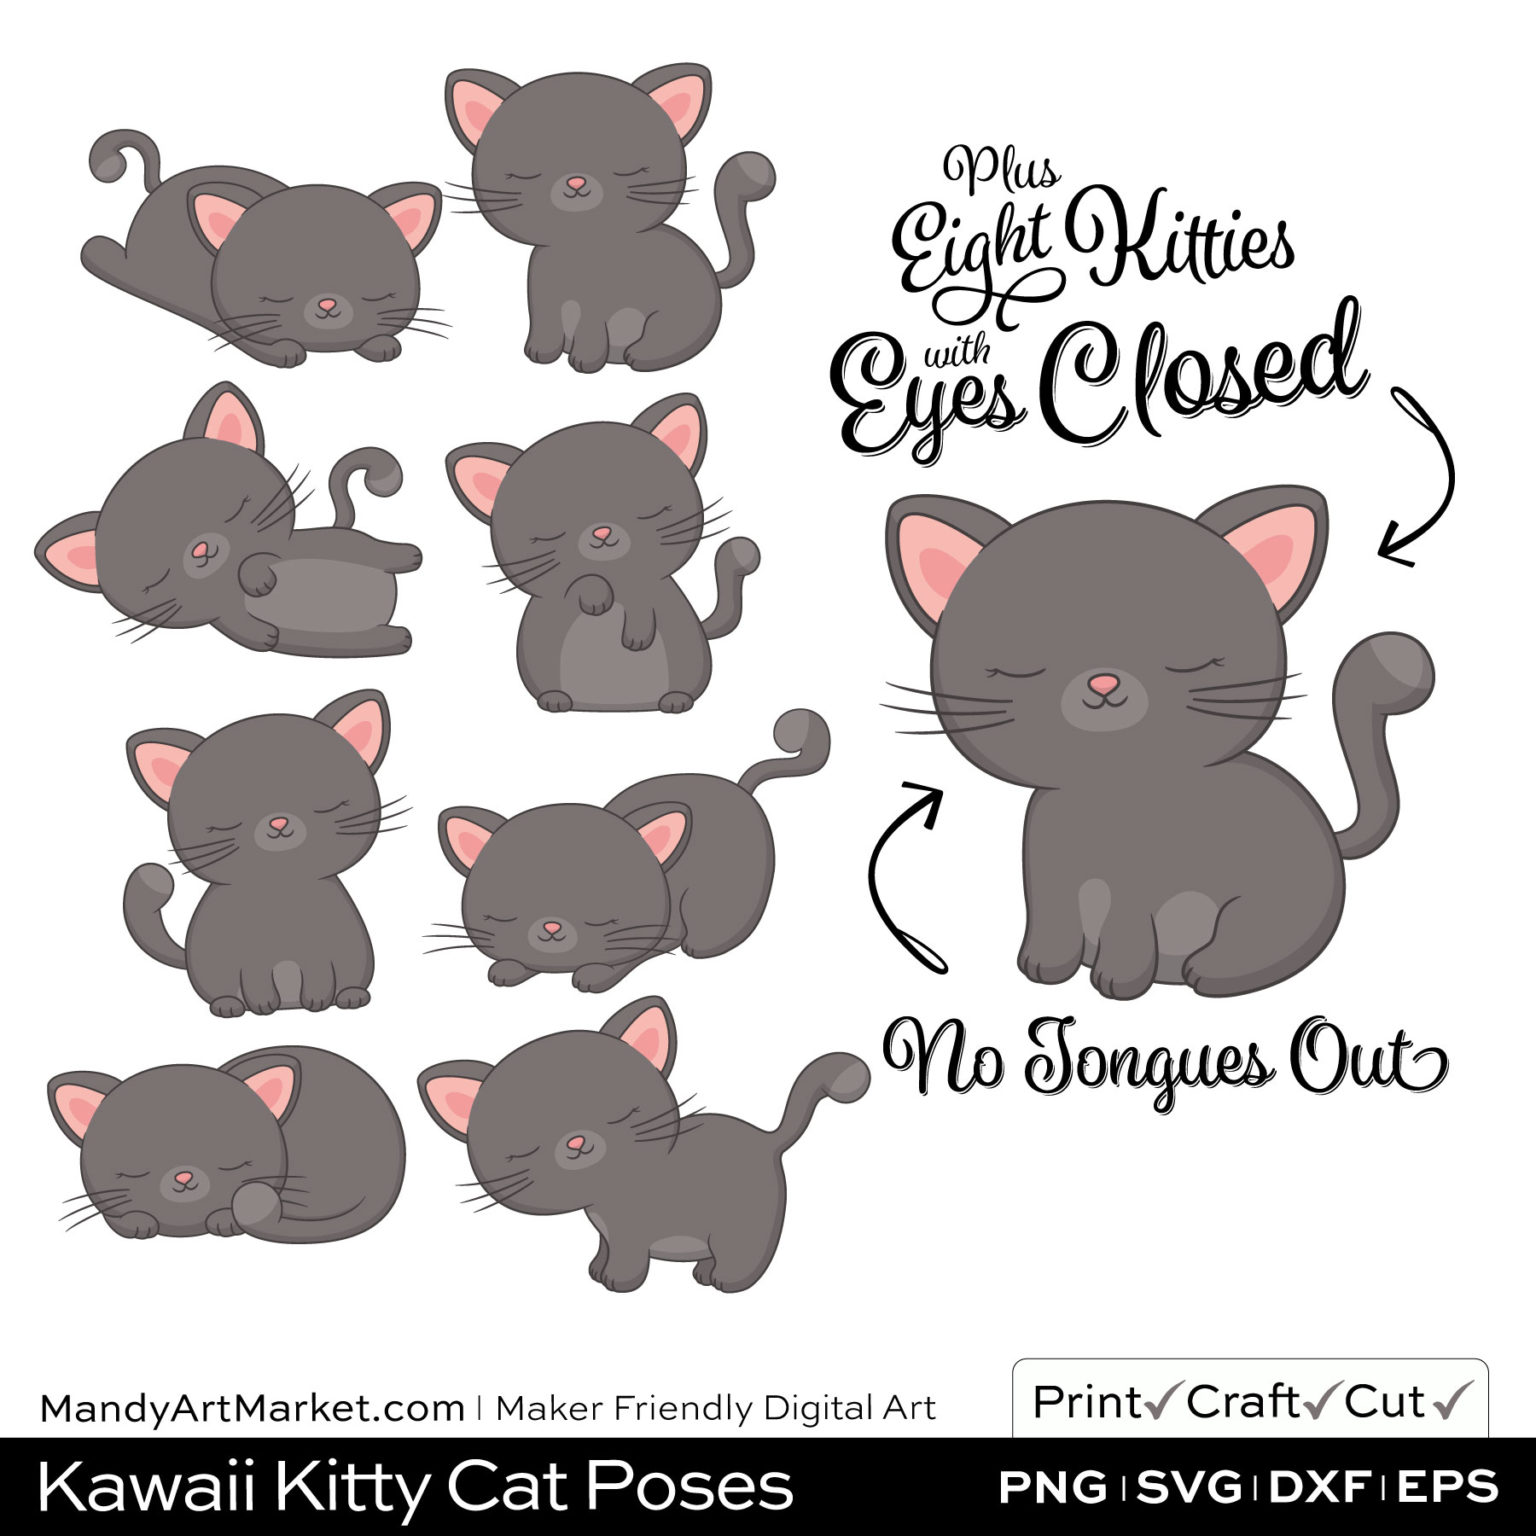 Pewter Gray Kawaii Kitty Cat Poses Clipart PNGs Included in Download